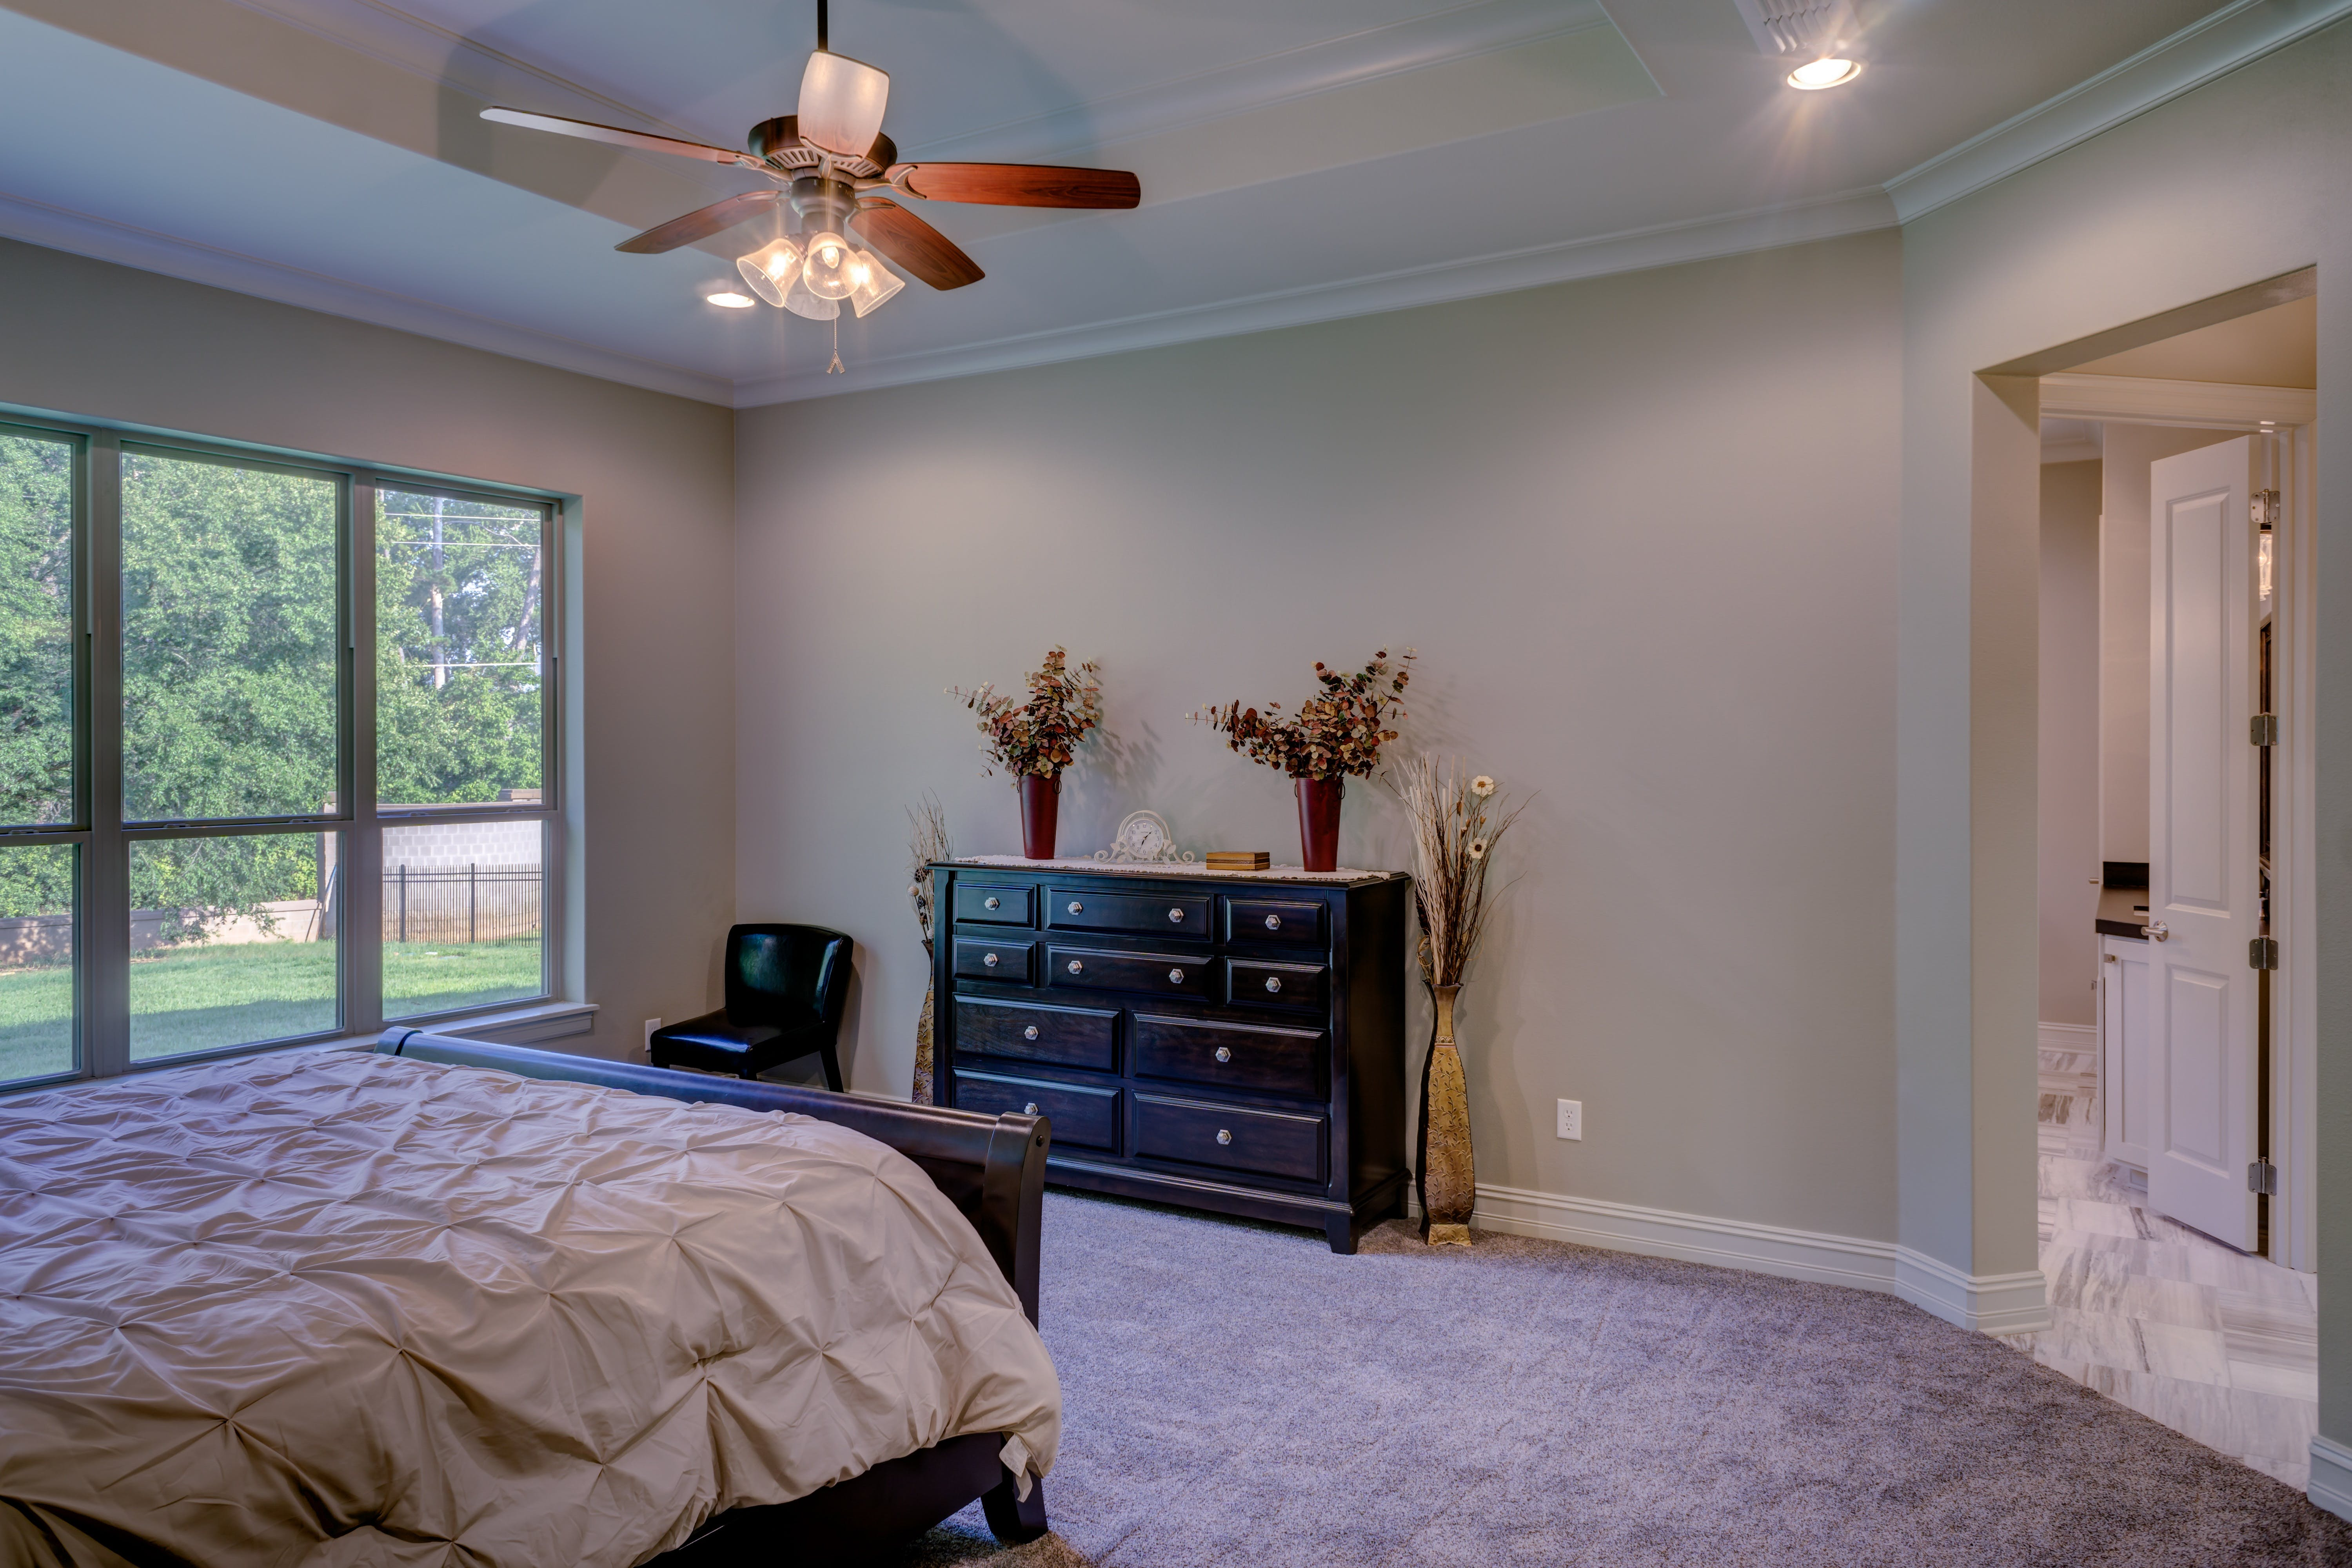 Bed Comforter Under the Ceiling Fan